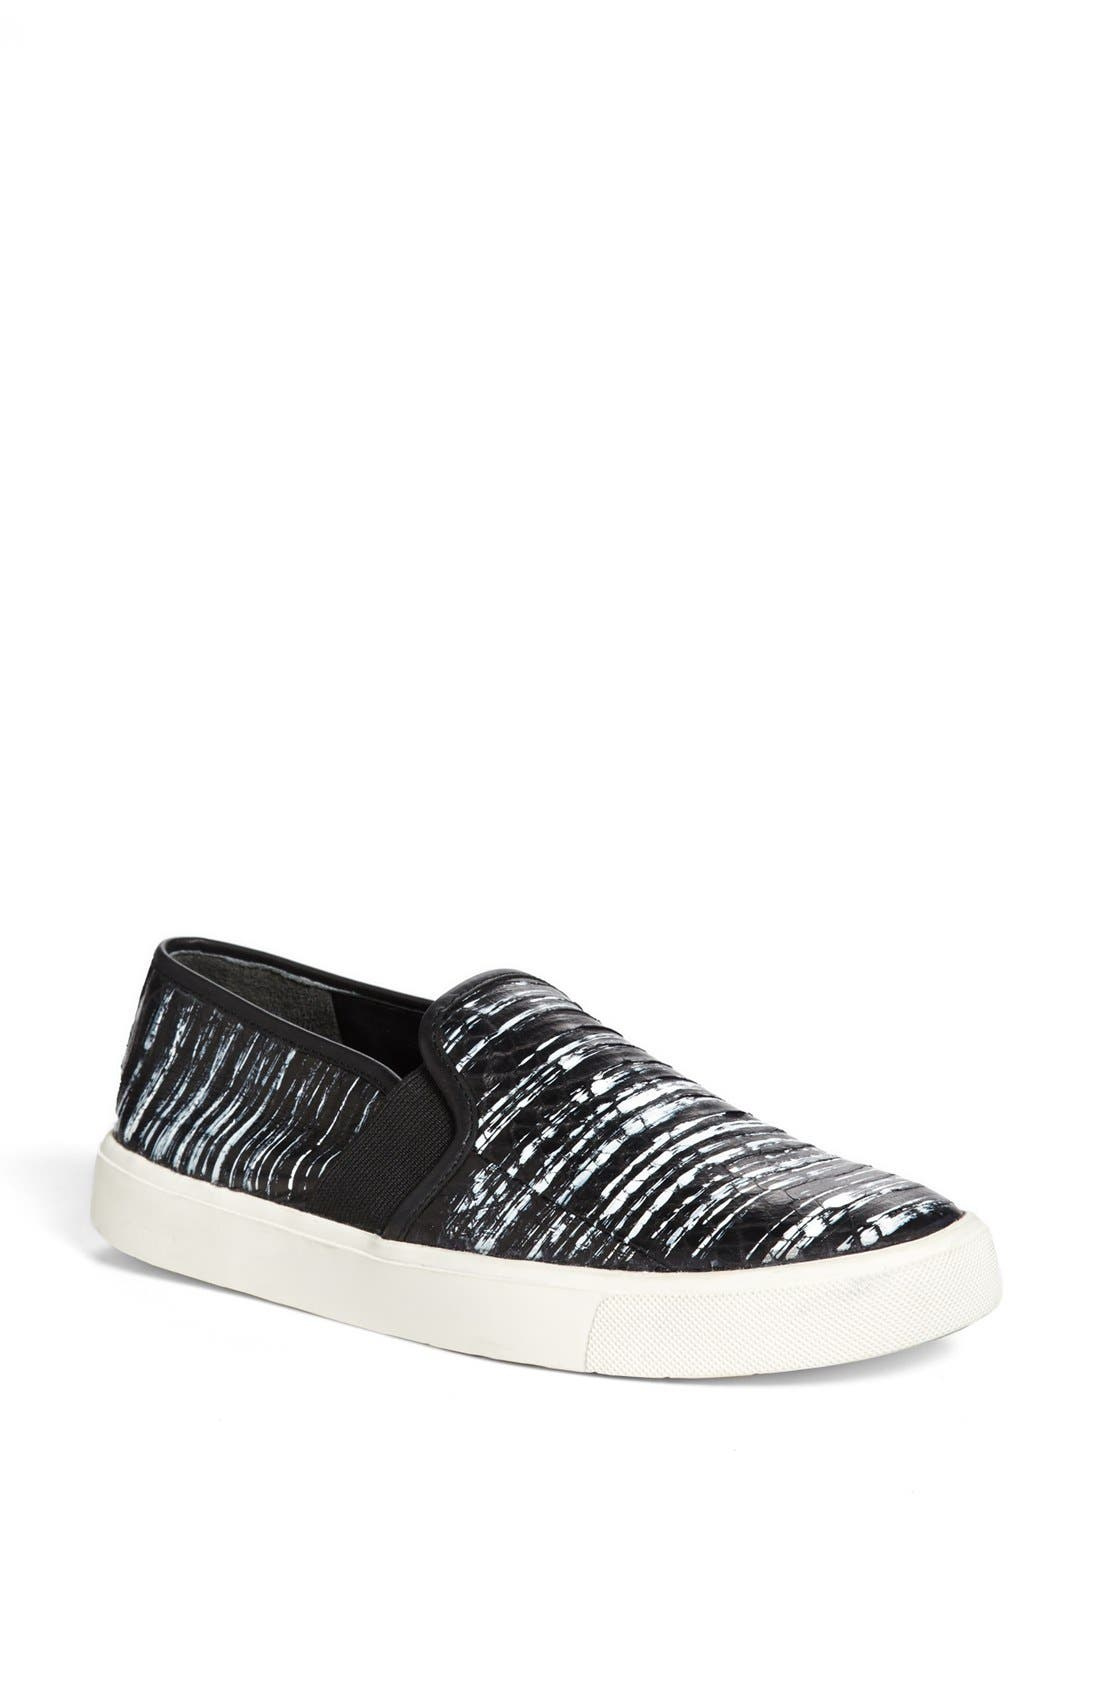 Alternate Image 1 Selected - Vince 'Blair 7' Snakeskin Slip-On Sneaker